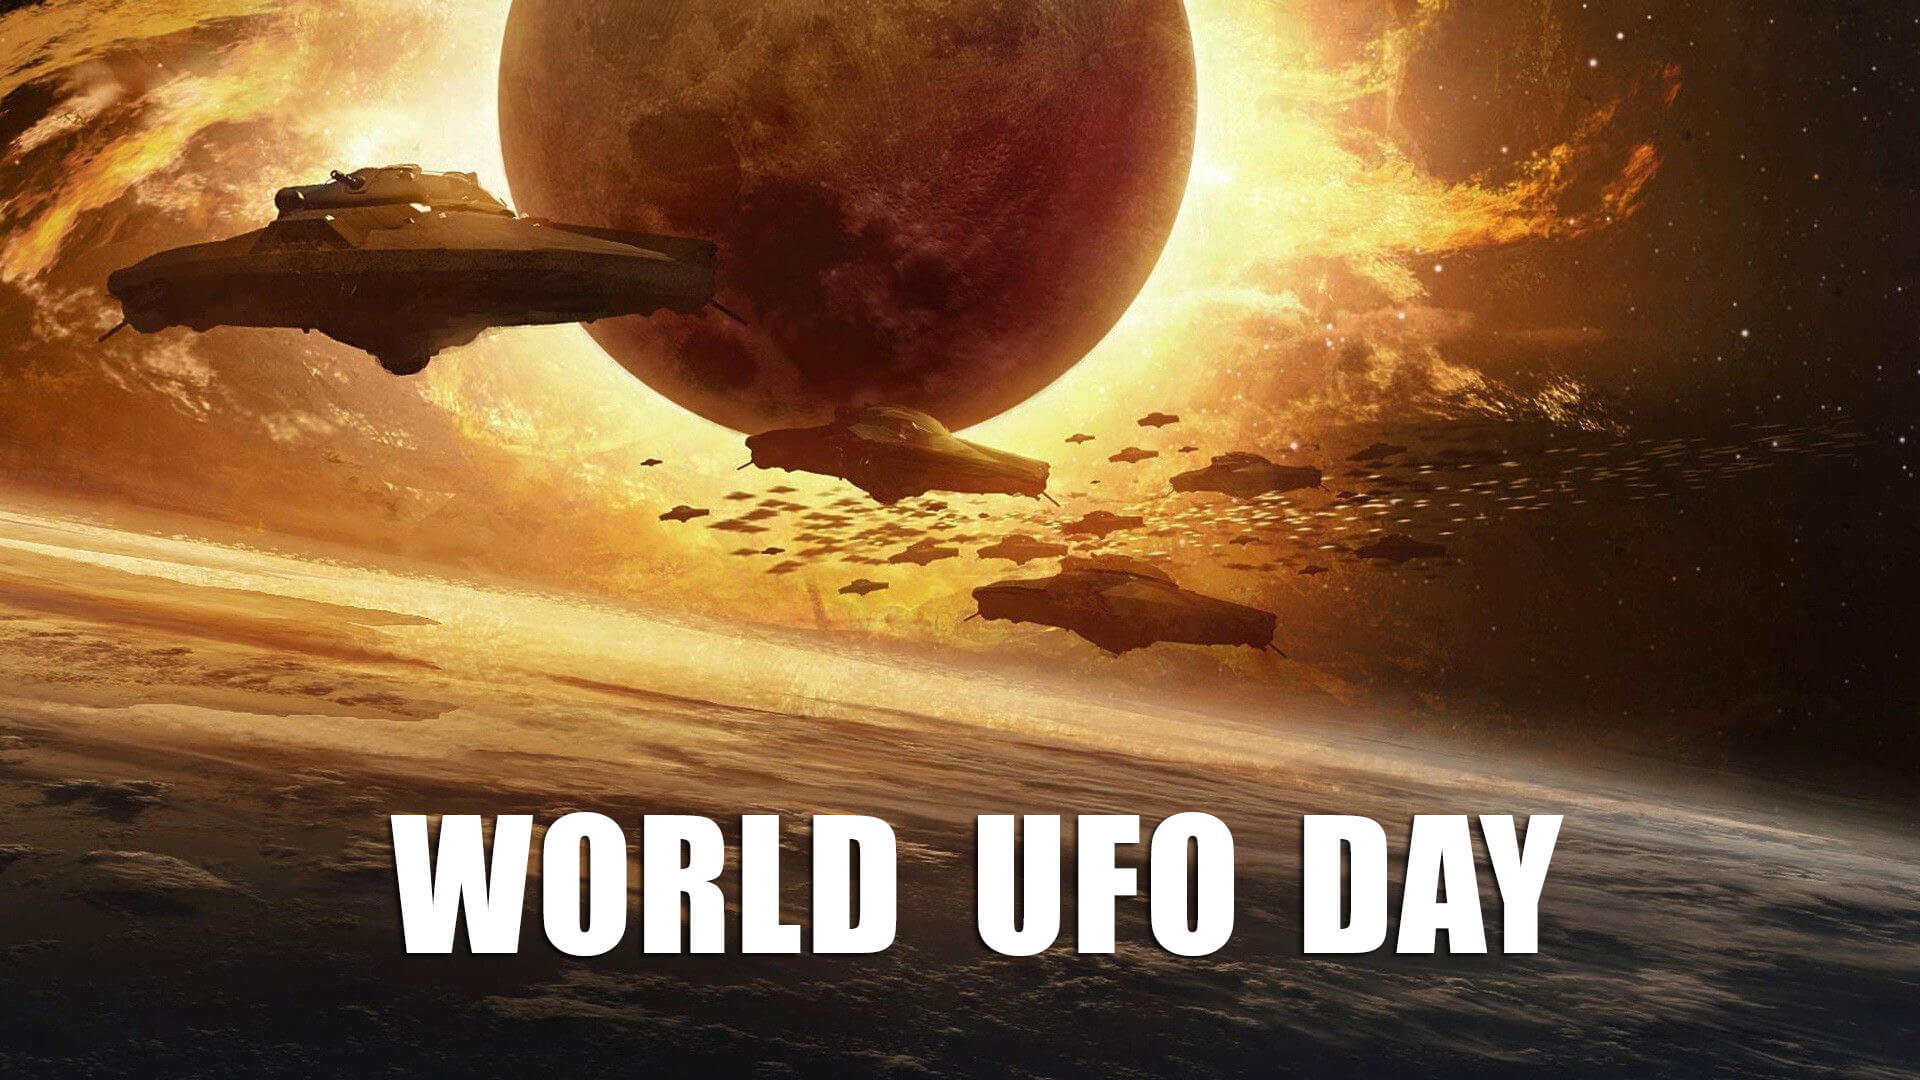 world ufo day unidentified flying object saucer alien earth hd wallpaper